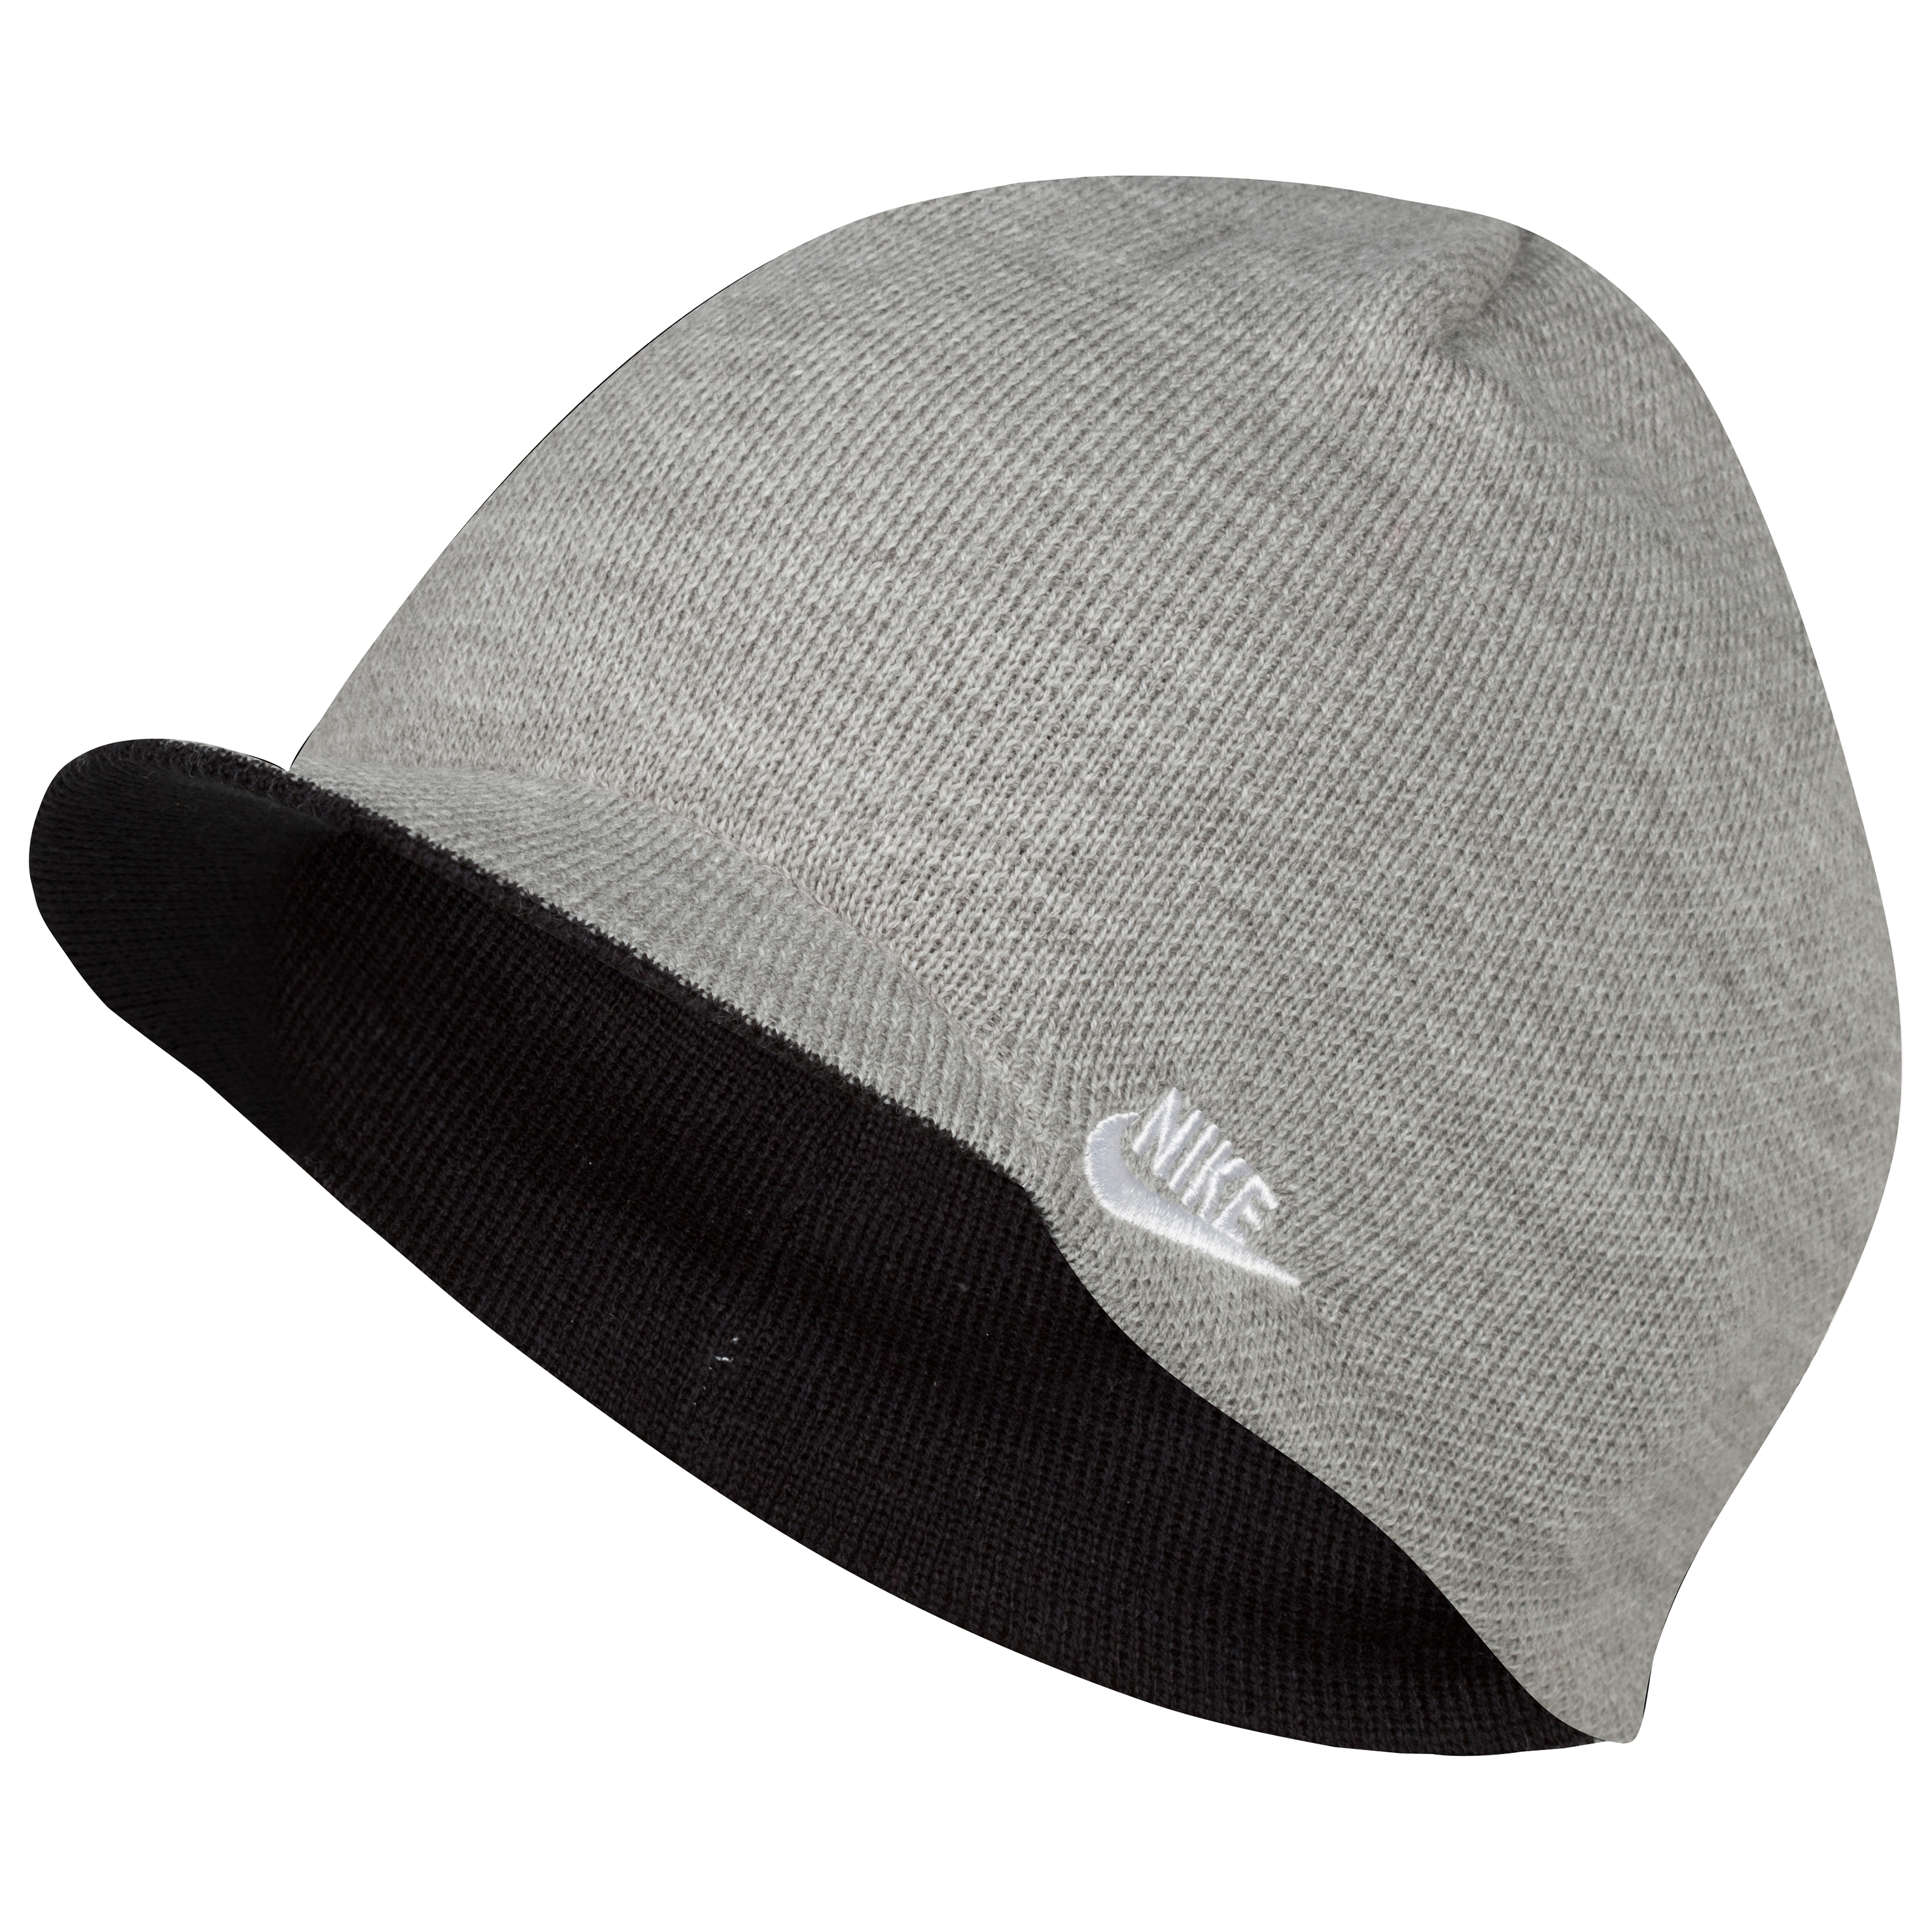 Nike Peaked Futura Beanie - Dark Grey Heather/Black/White